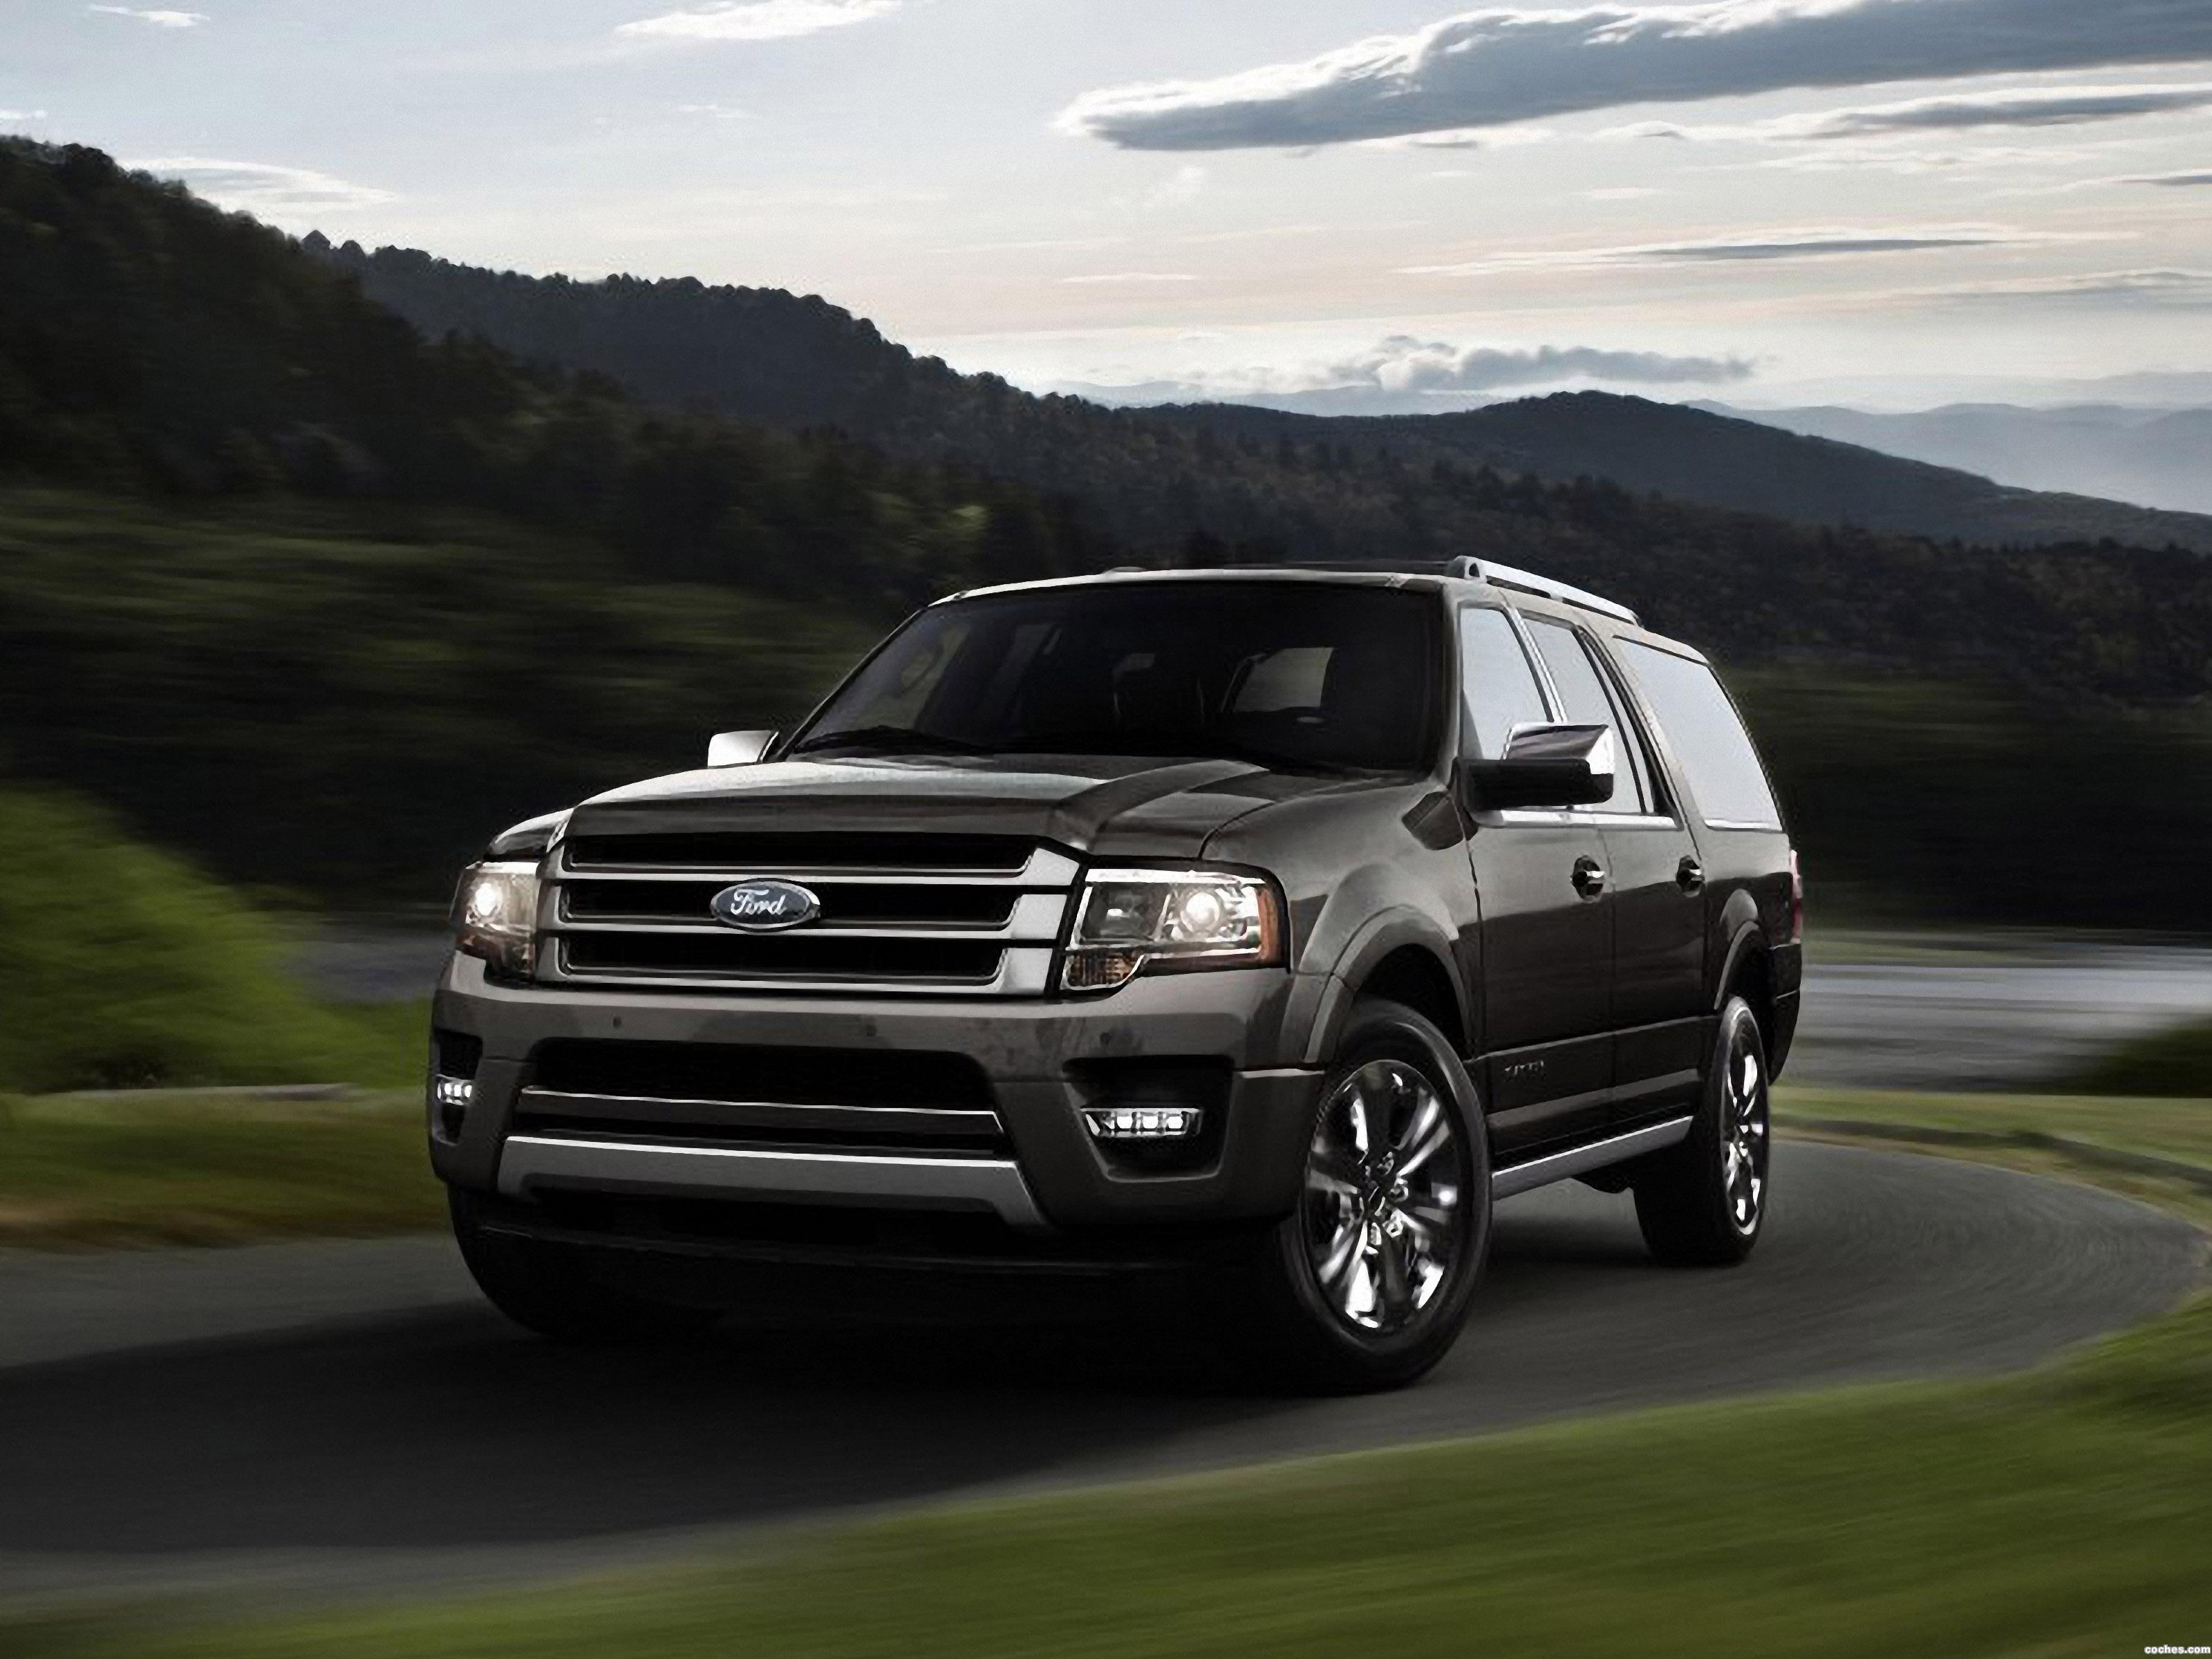 Foto 0 de Ford Expedition 2014